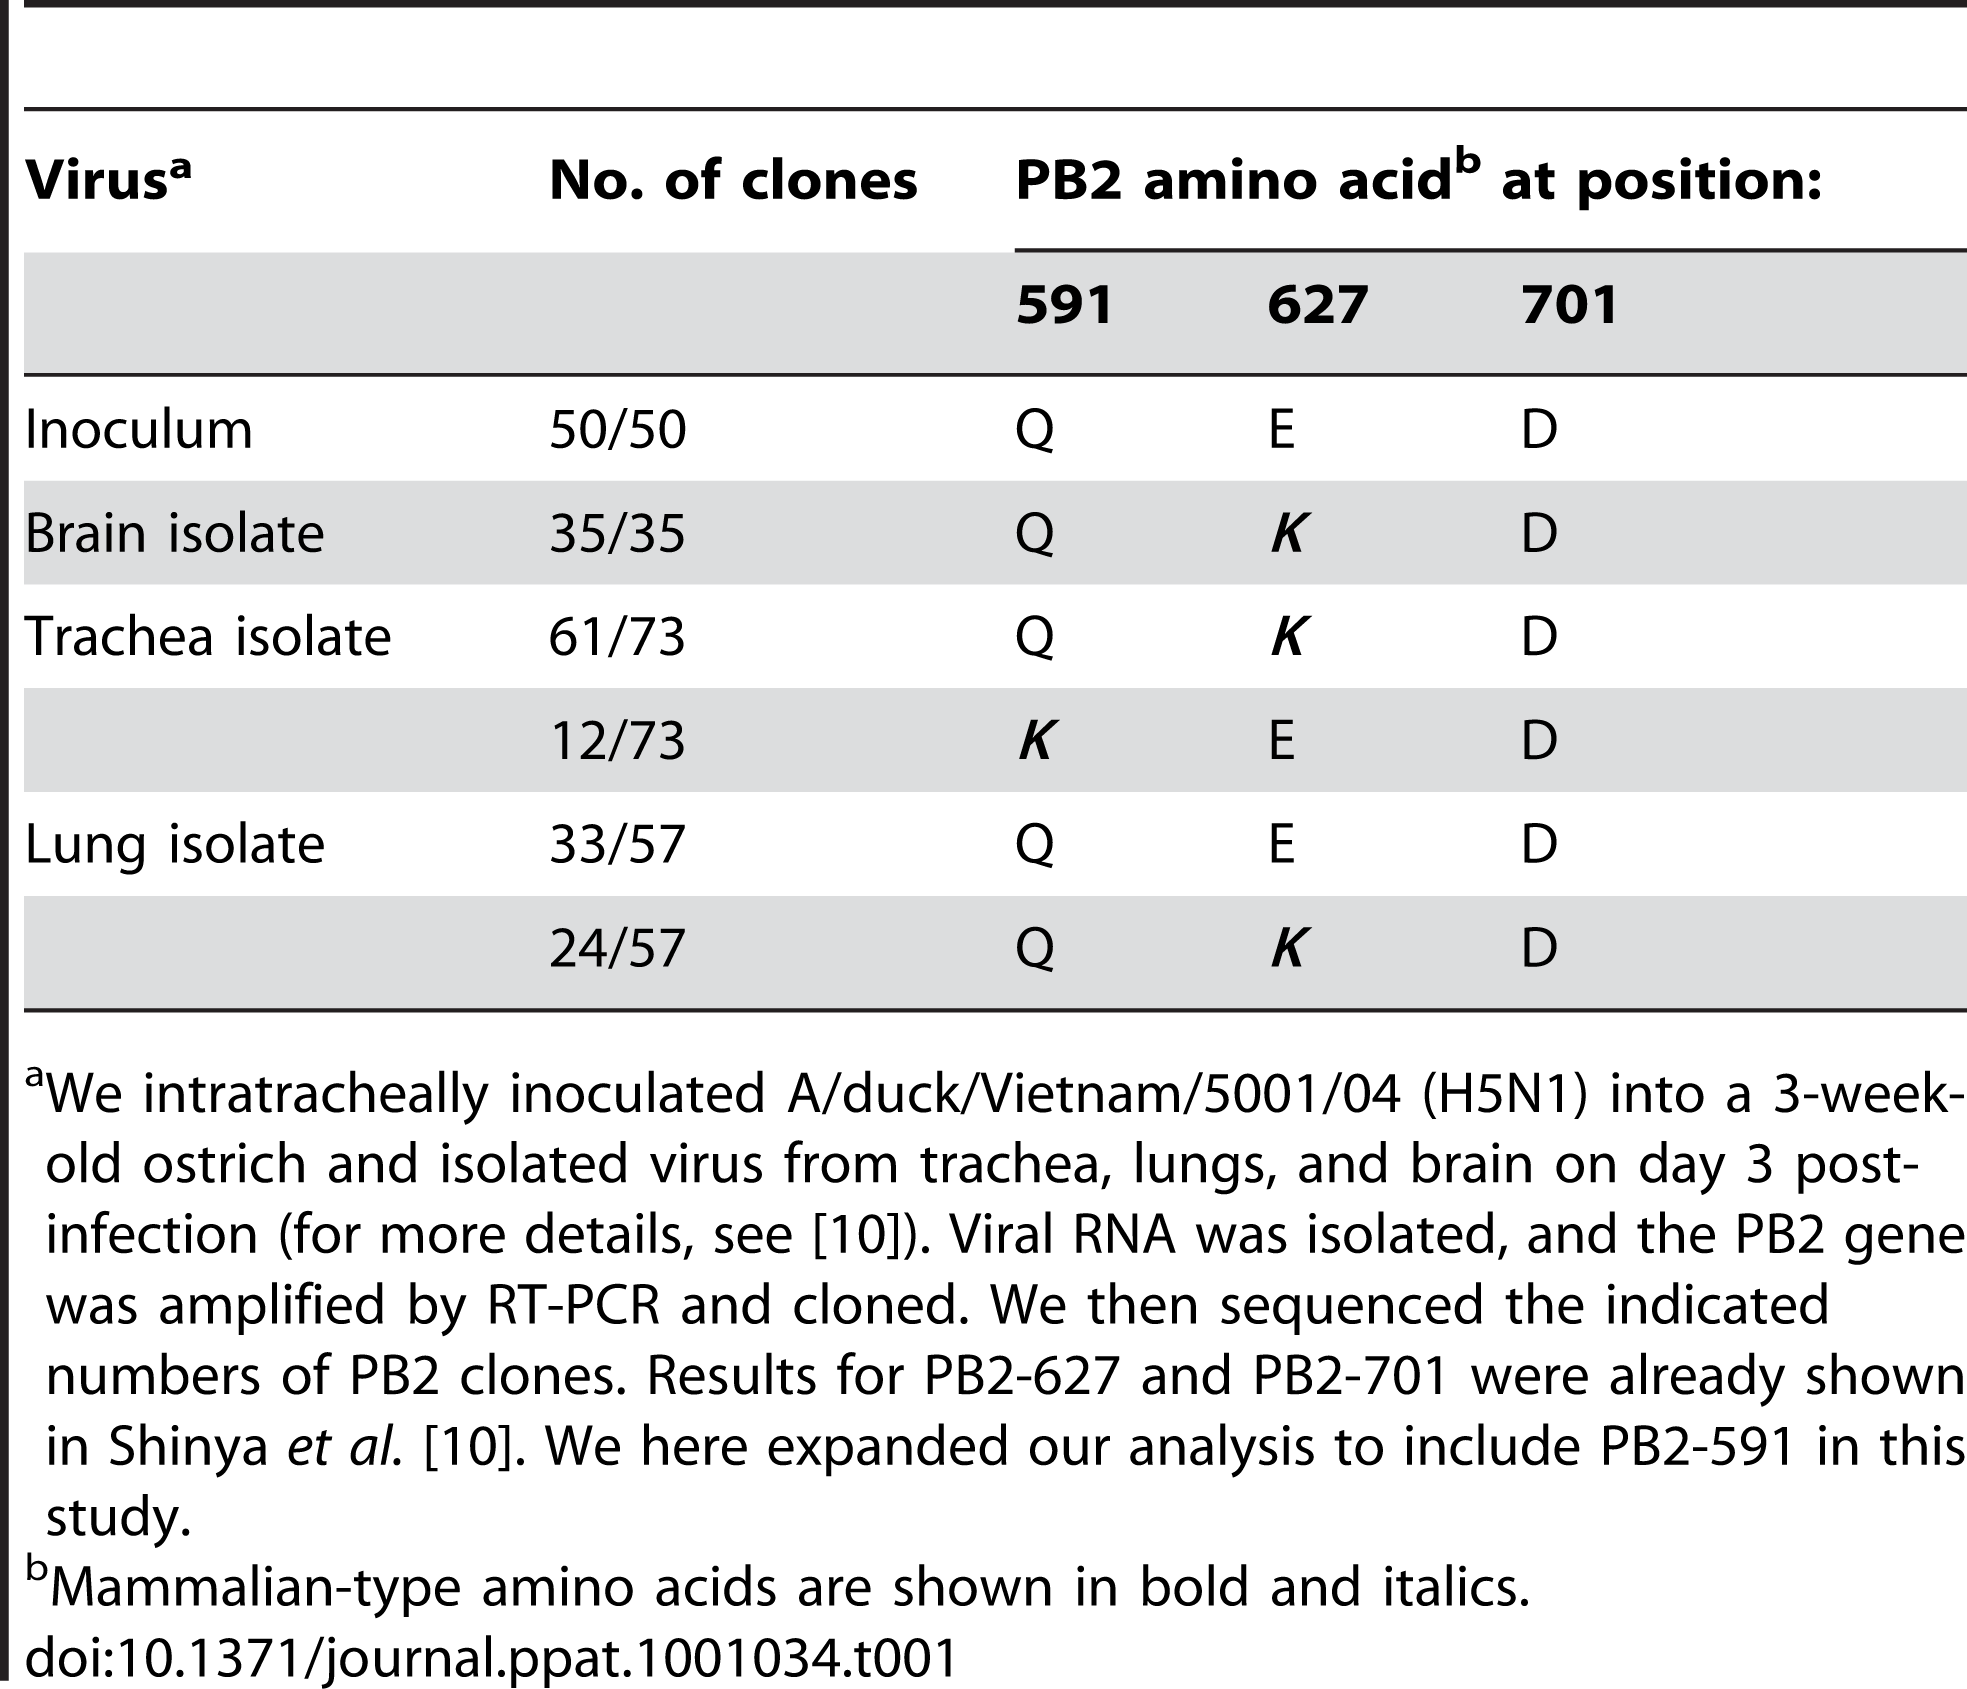 Mammalian-type amino acids in the PB2 protein of ostrich isolates.